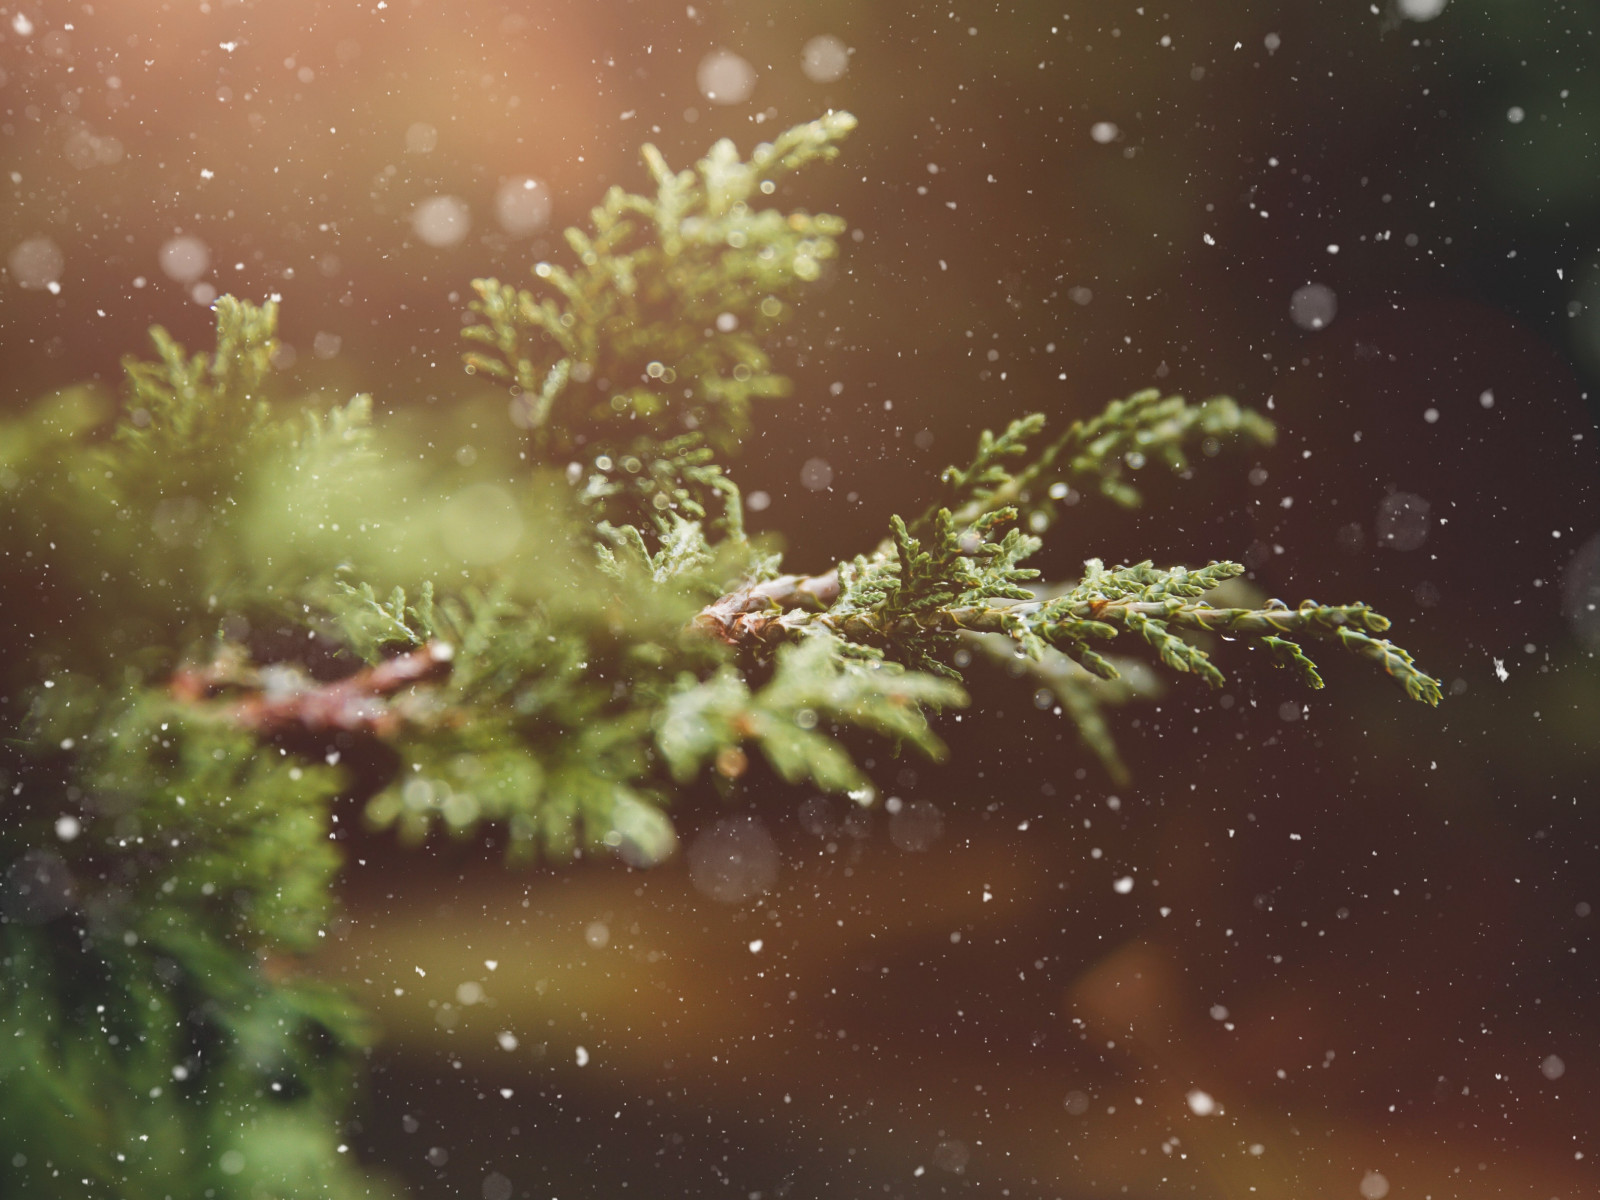 Snowflakes over the pine branch wallpaper 1600x1200